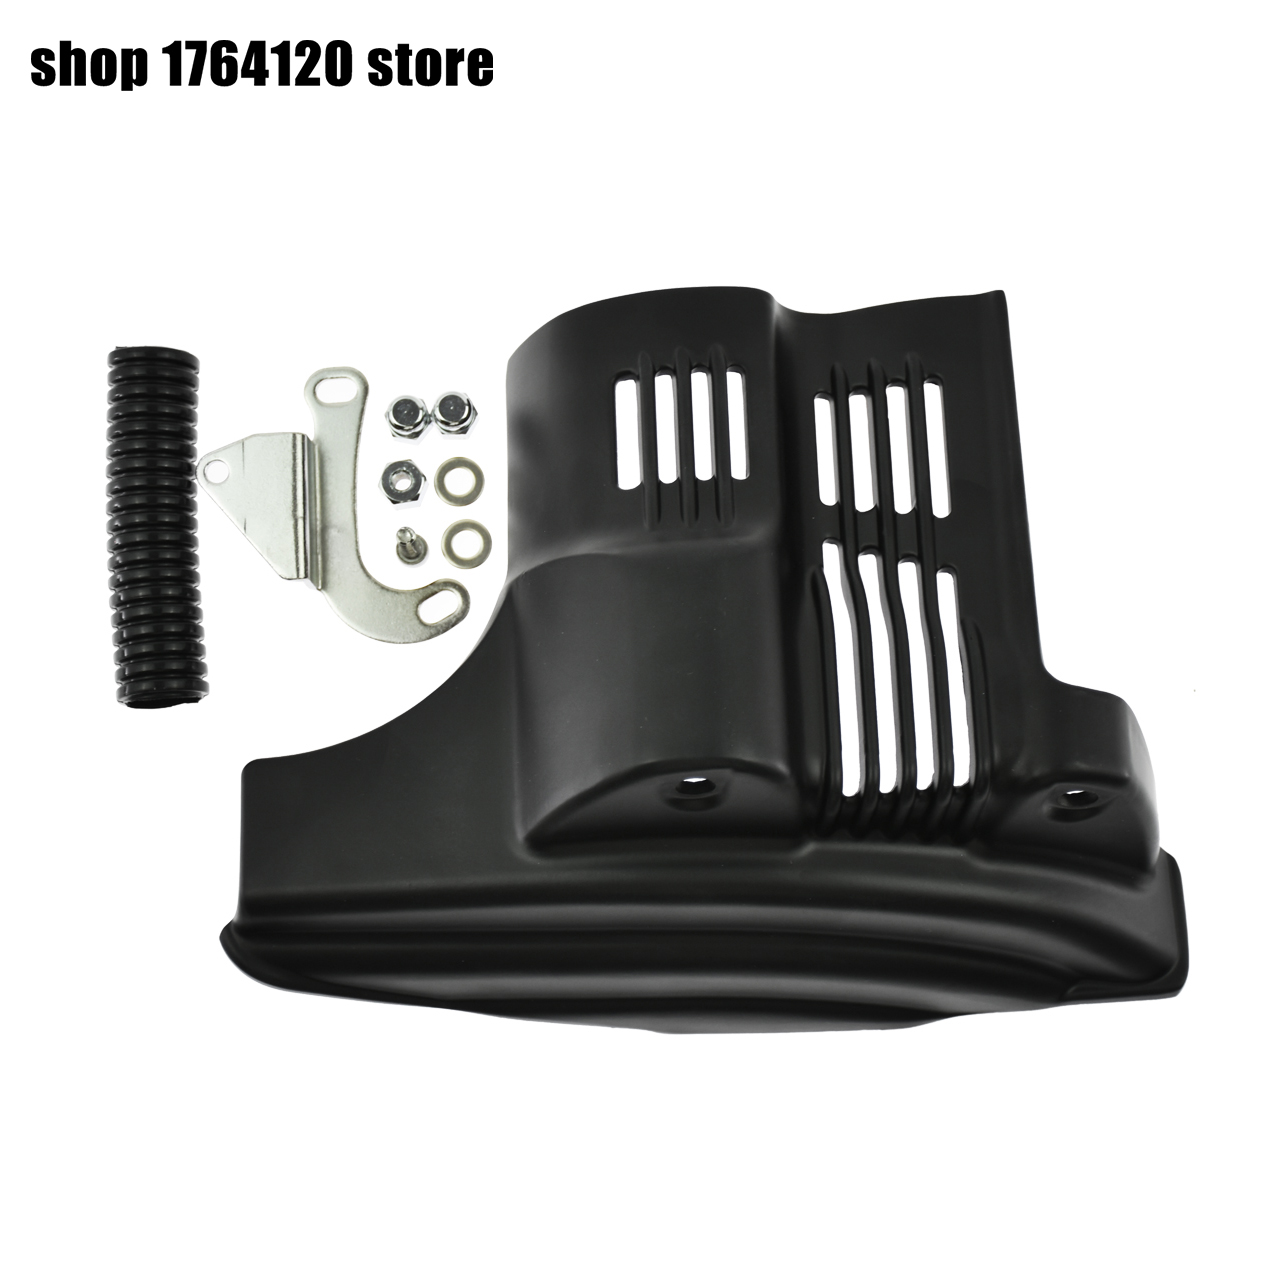 Motorcycle Black Starter Cover For <font><b>Harley</b></font> Sportster <font><b>Iron</b></font> <font><b>883</b></font> XL883N 2009-2018 Seventy Two XL1200V 2012-2016 Models image